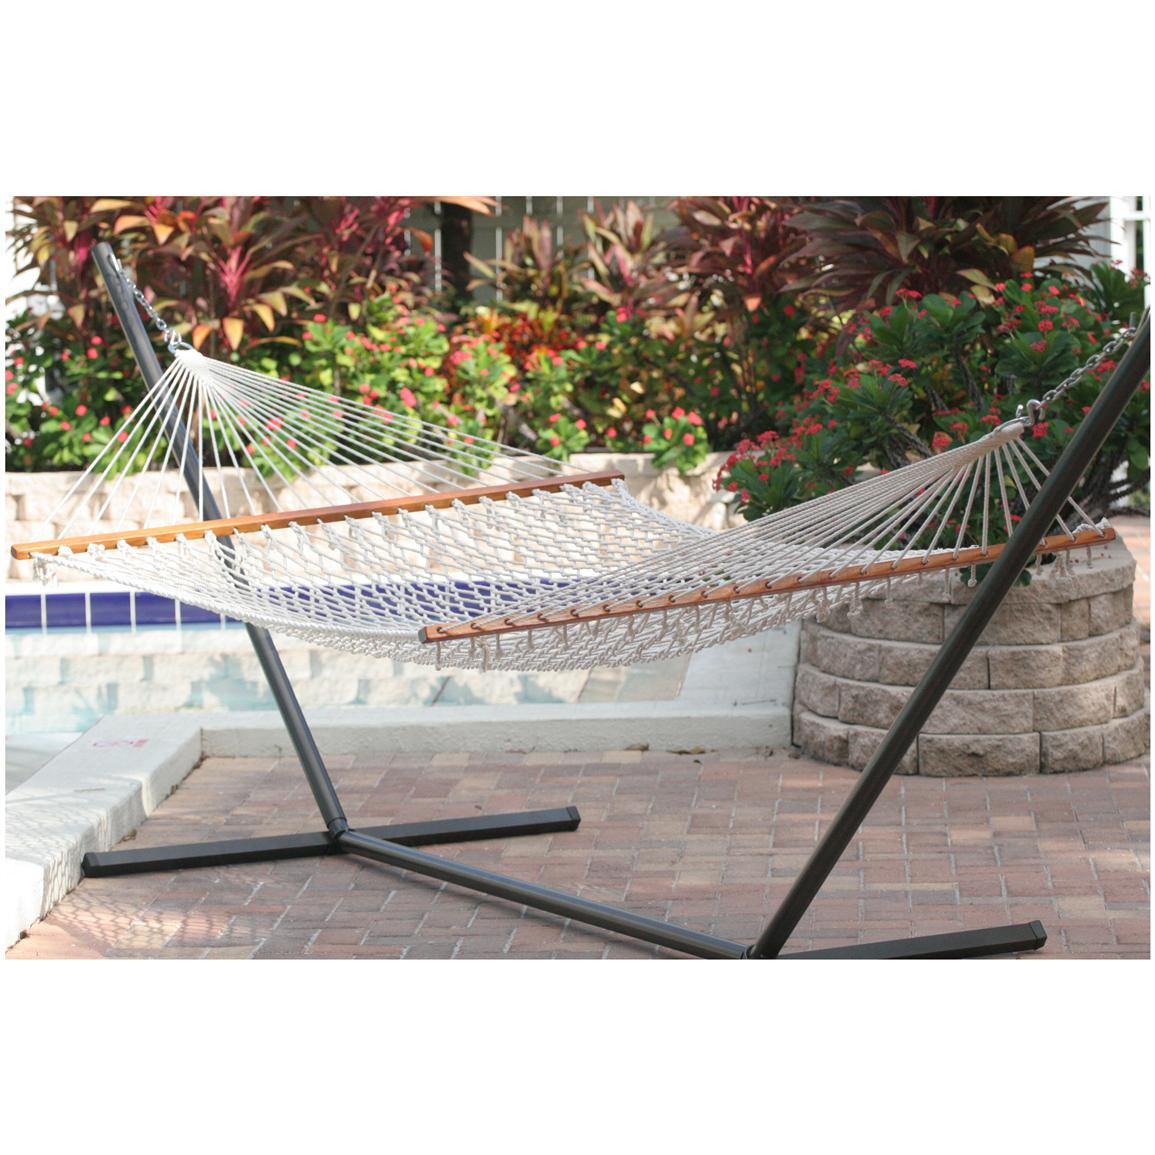 Smart Garden Cancun Premium Double Rope Hammock